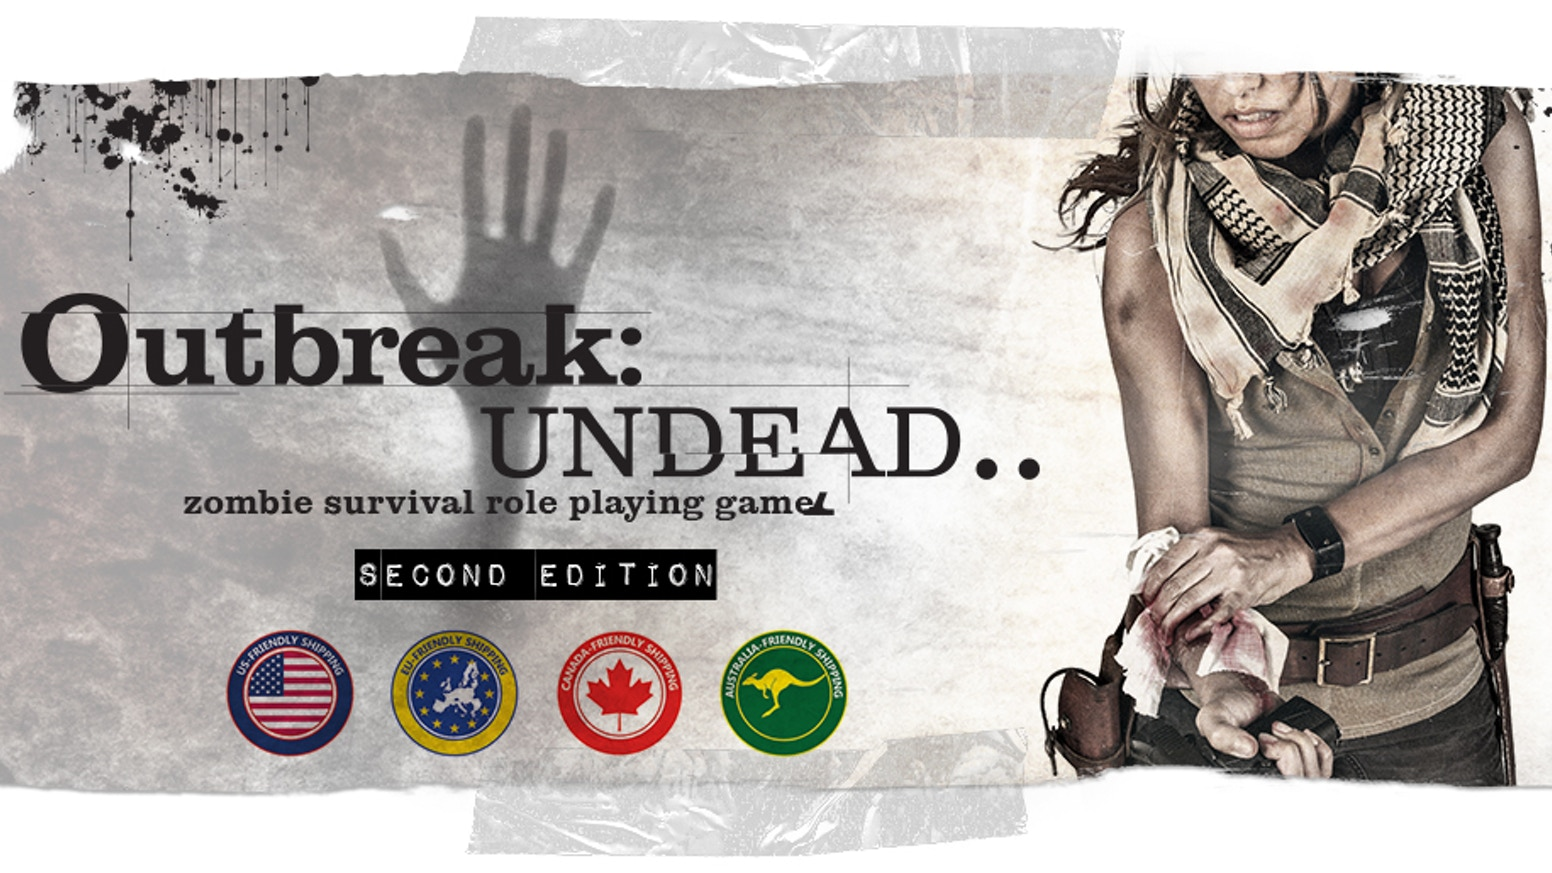 Outbreak: Undead 2E - The Survival Horror Simulation RPG  by Hunters